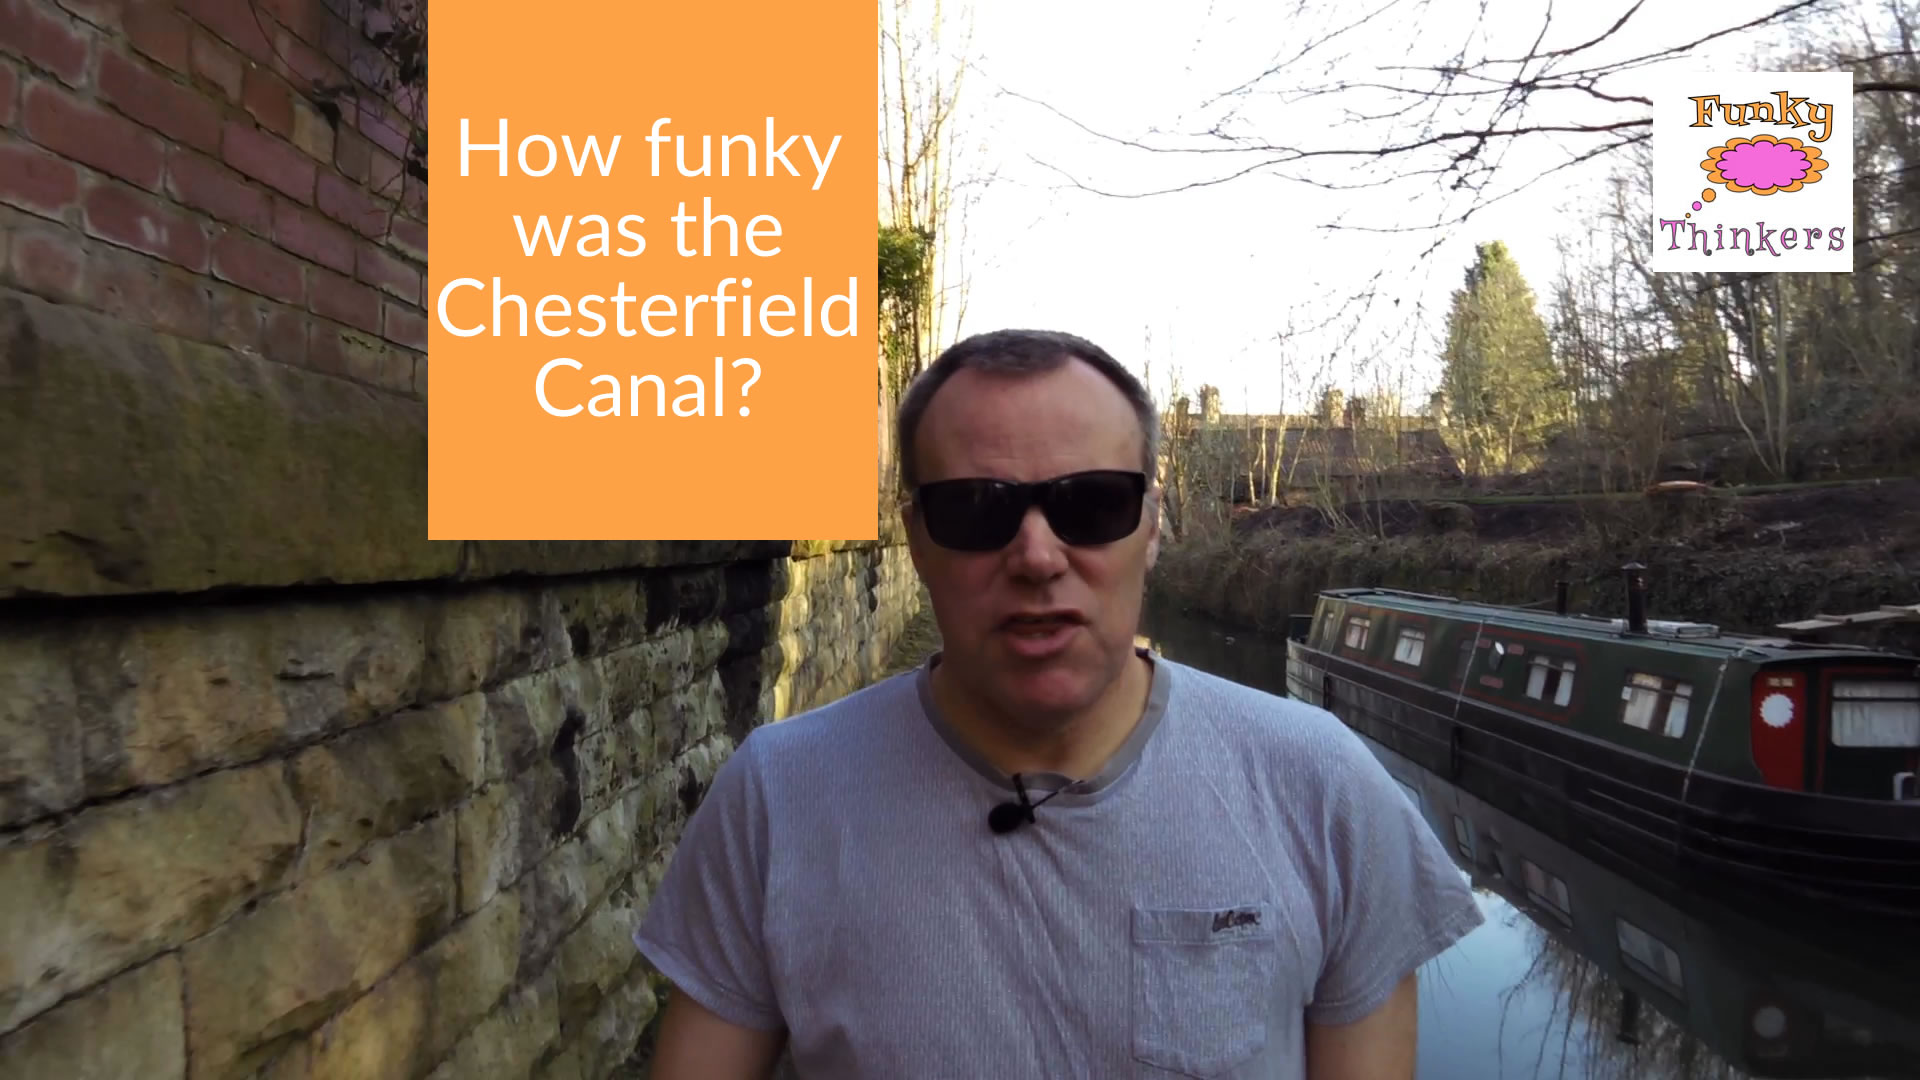 how funky was the chesterfield canal